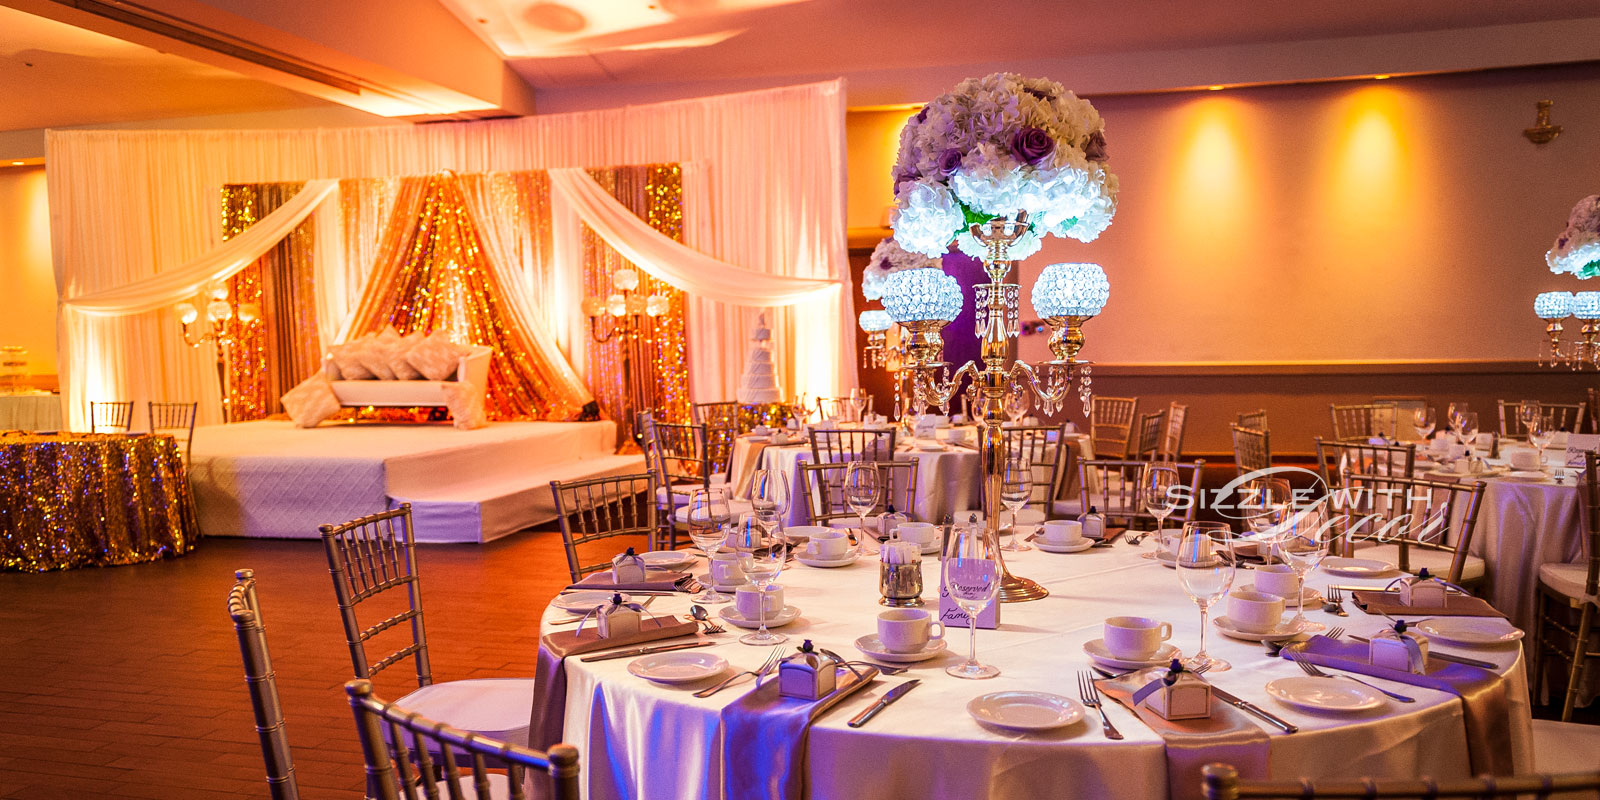 Sizzle With Decor Wedding And Event Decor Ottawa